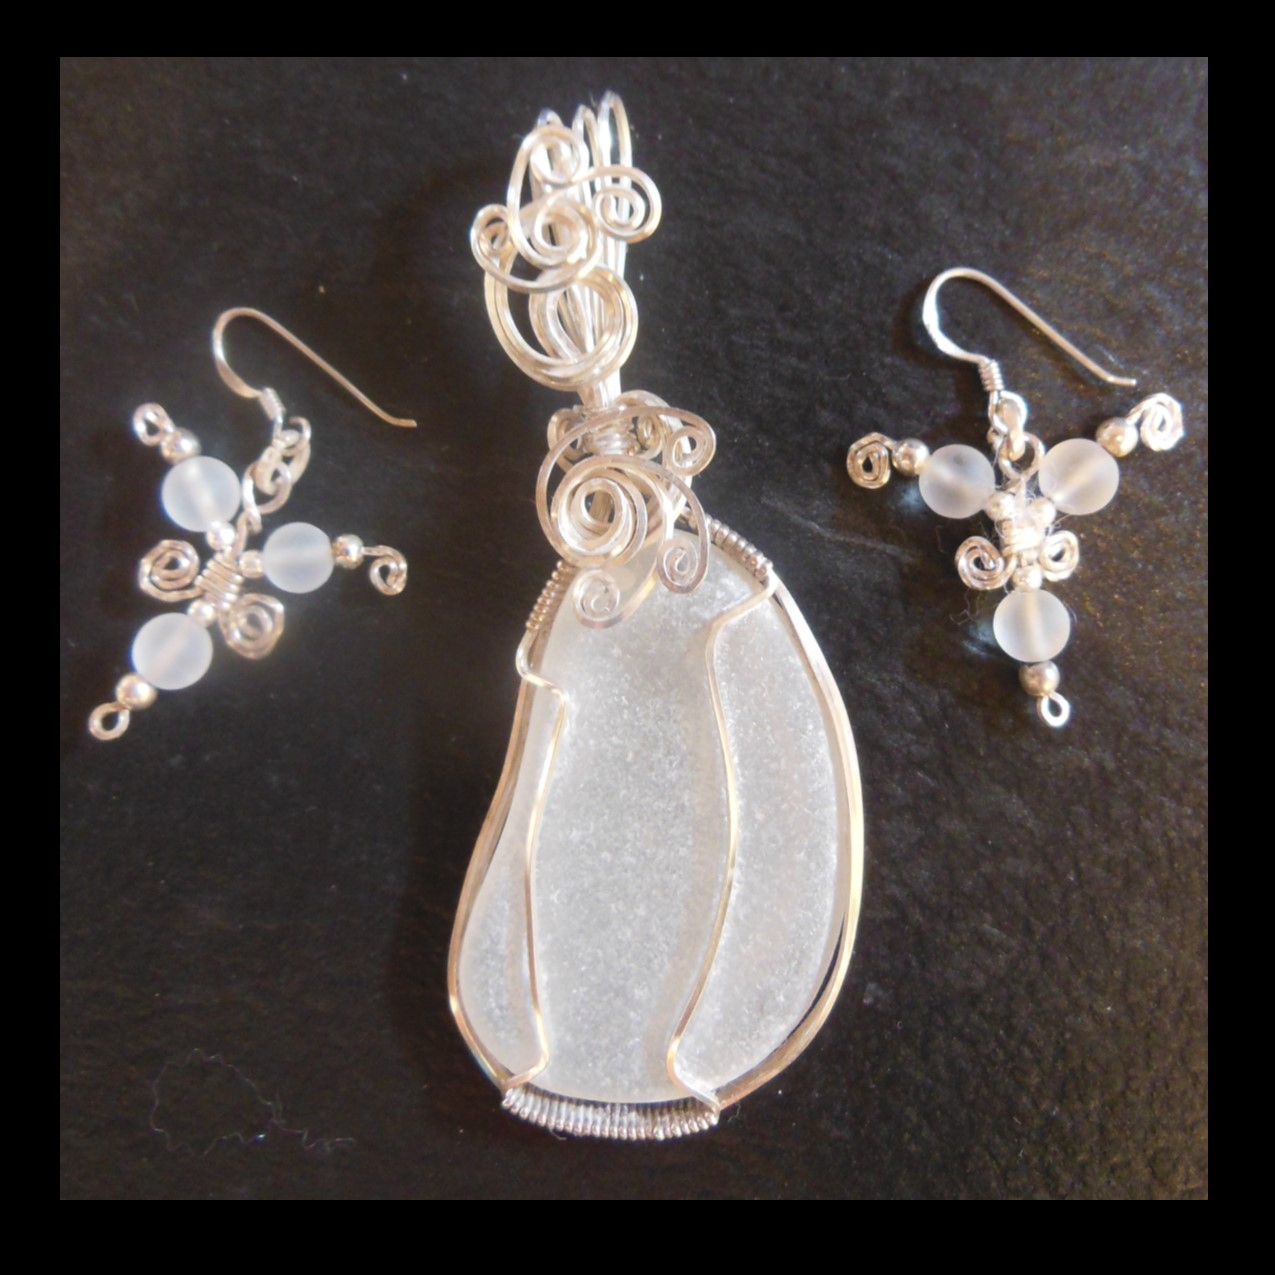 Pendant an Earrings